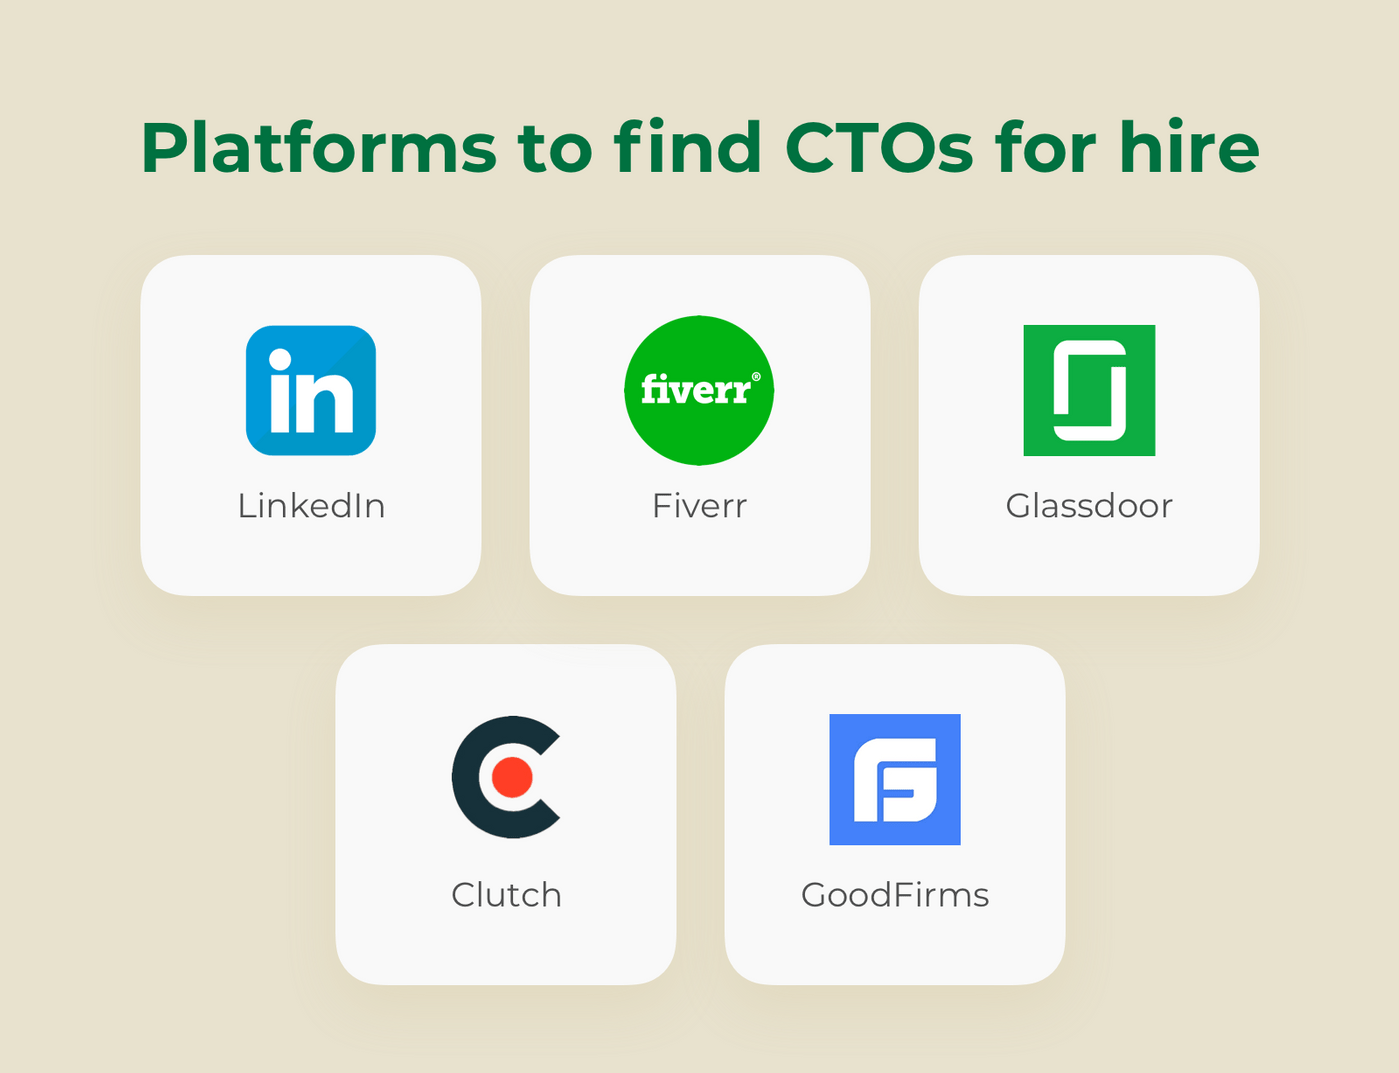 Websites to search for CTOs